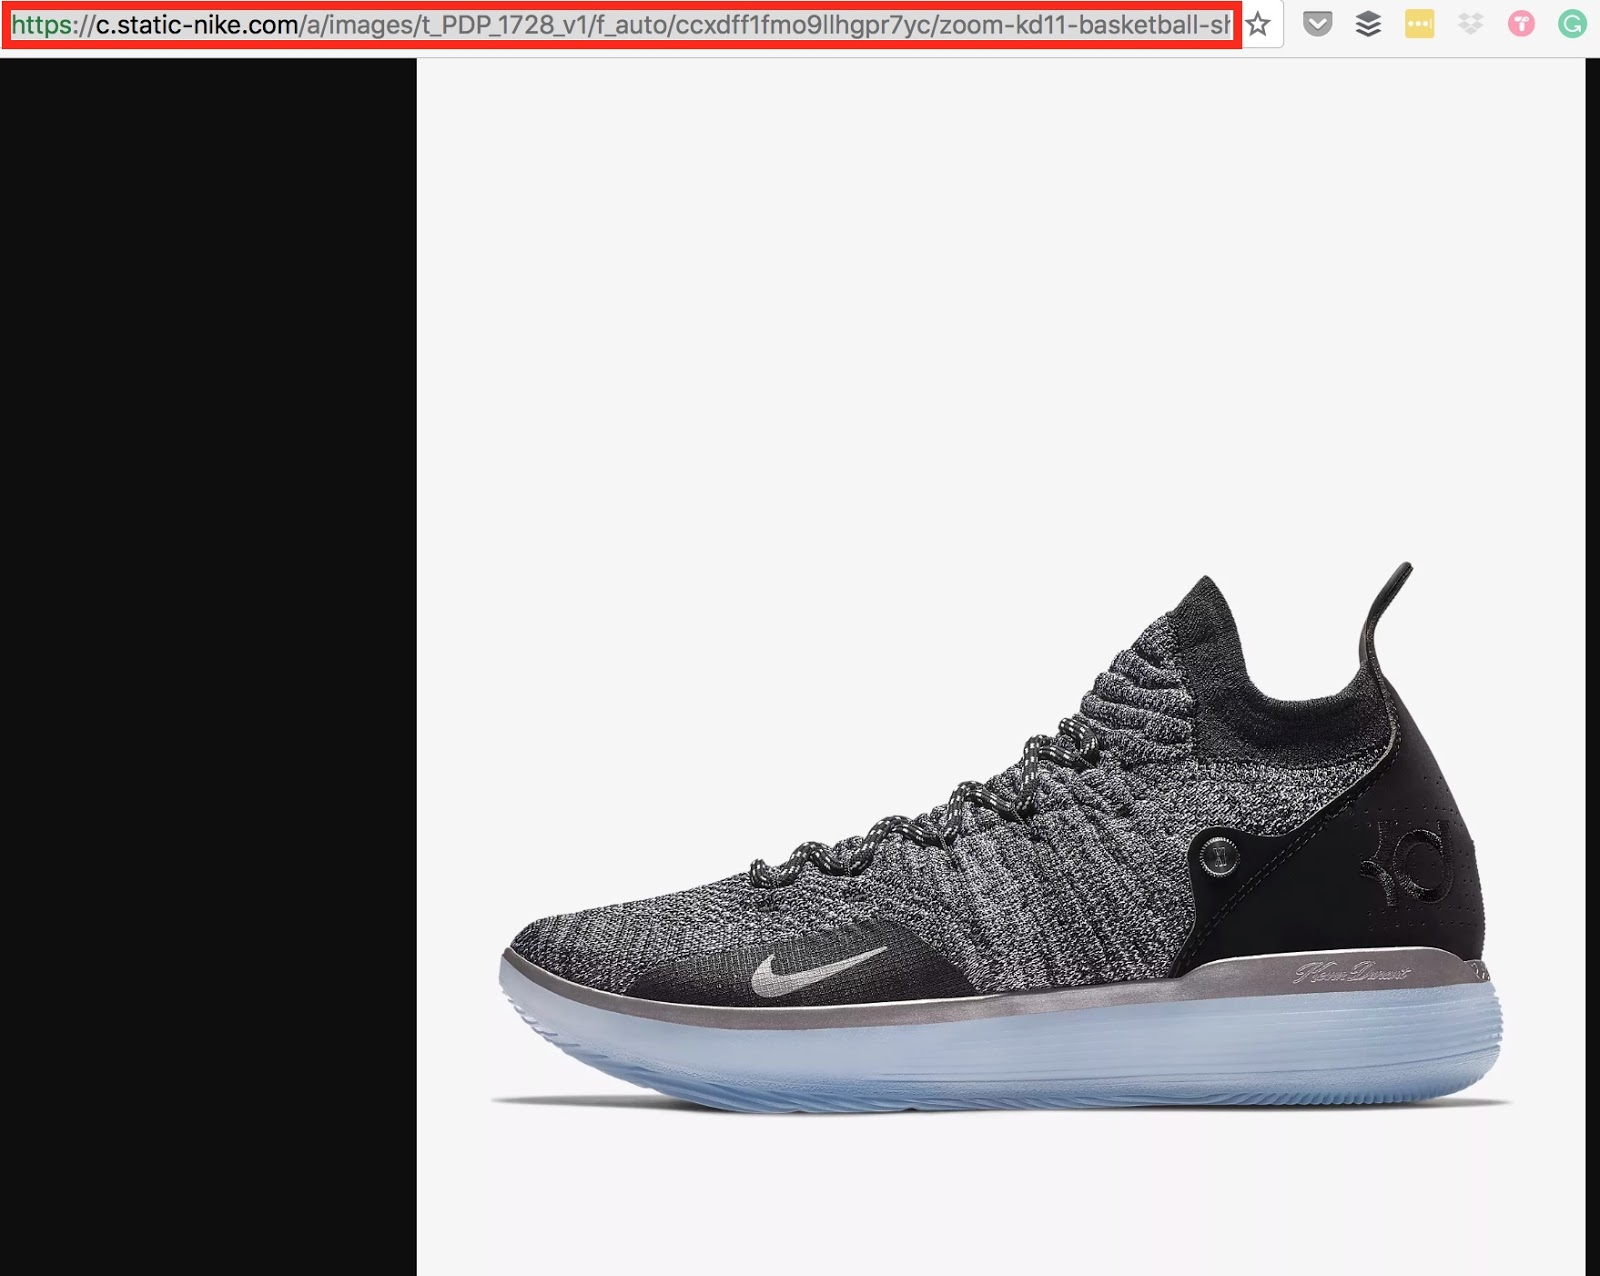 Screenshot showing a shoe and the URL